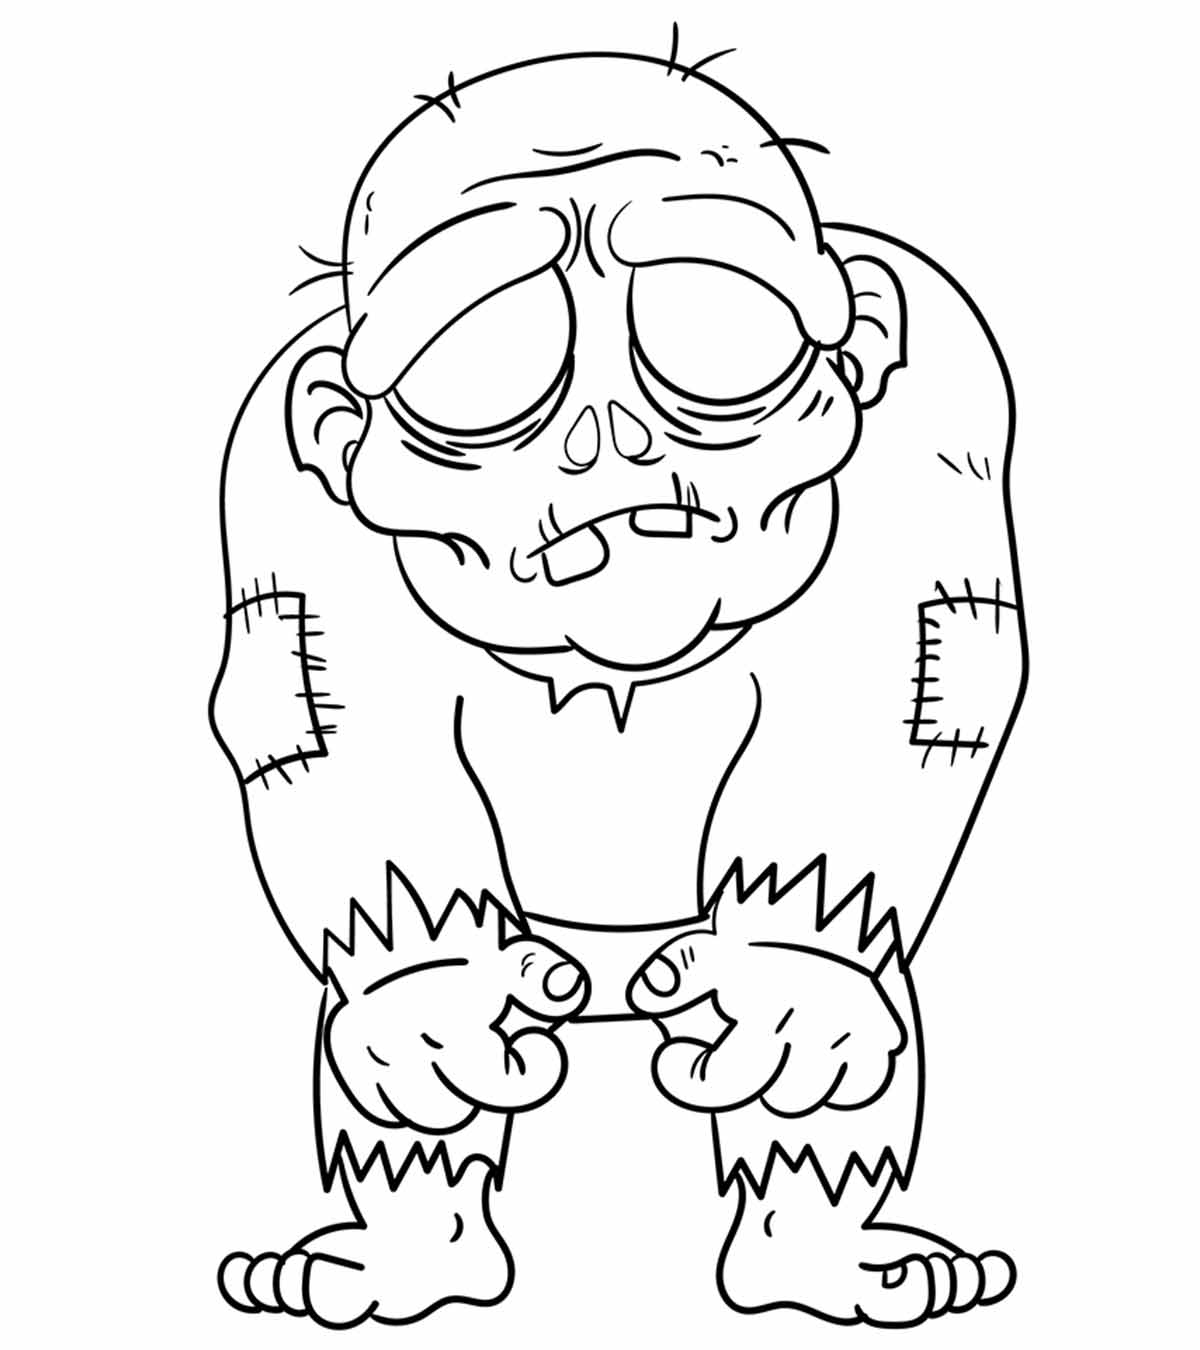 - Top 20 Zombie Coloring Pages For Your Kids